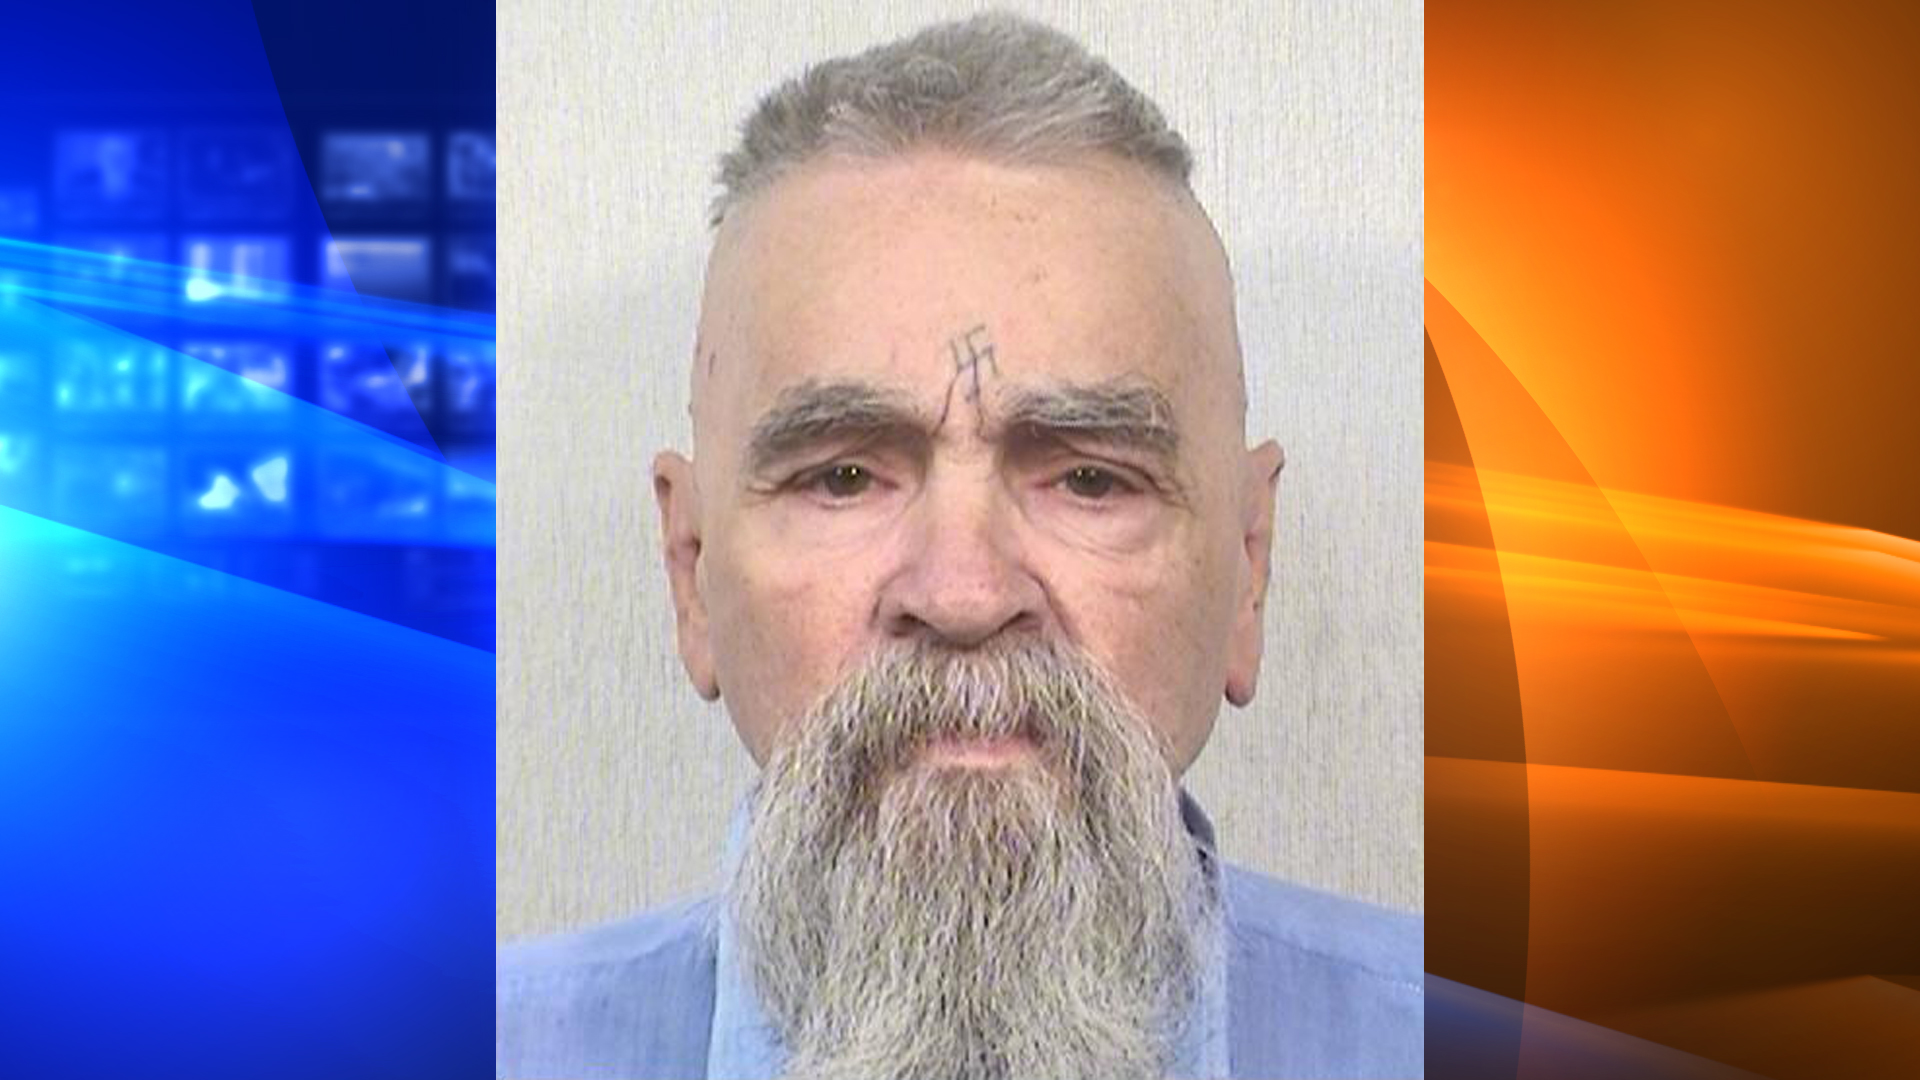 Charles Manson is shown in a California Department of Corrections and Rehabilitation photo dated Oct. 8, 2014.